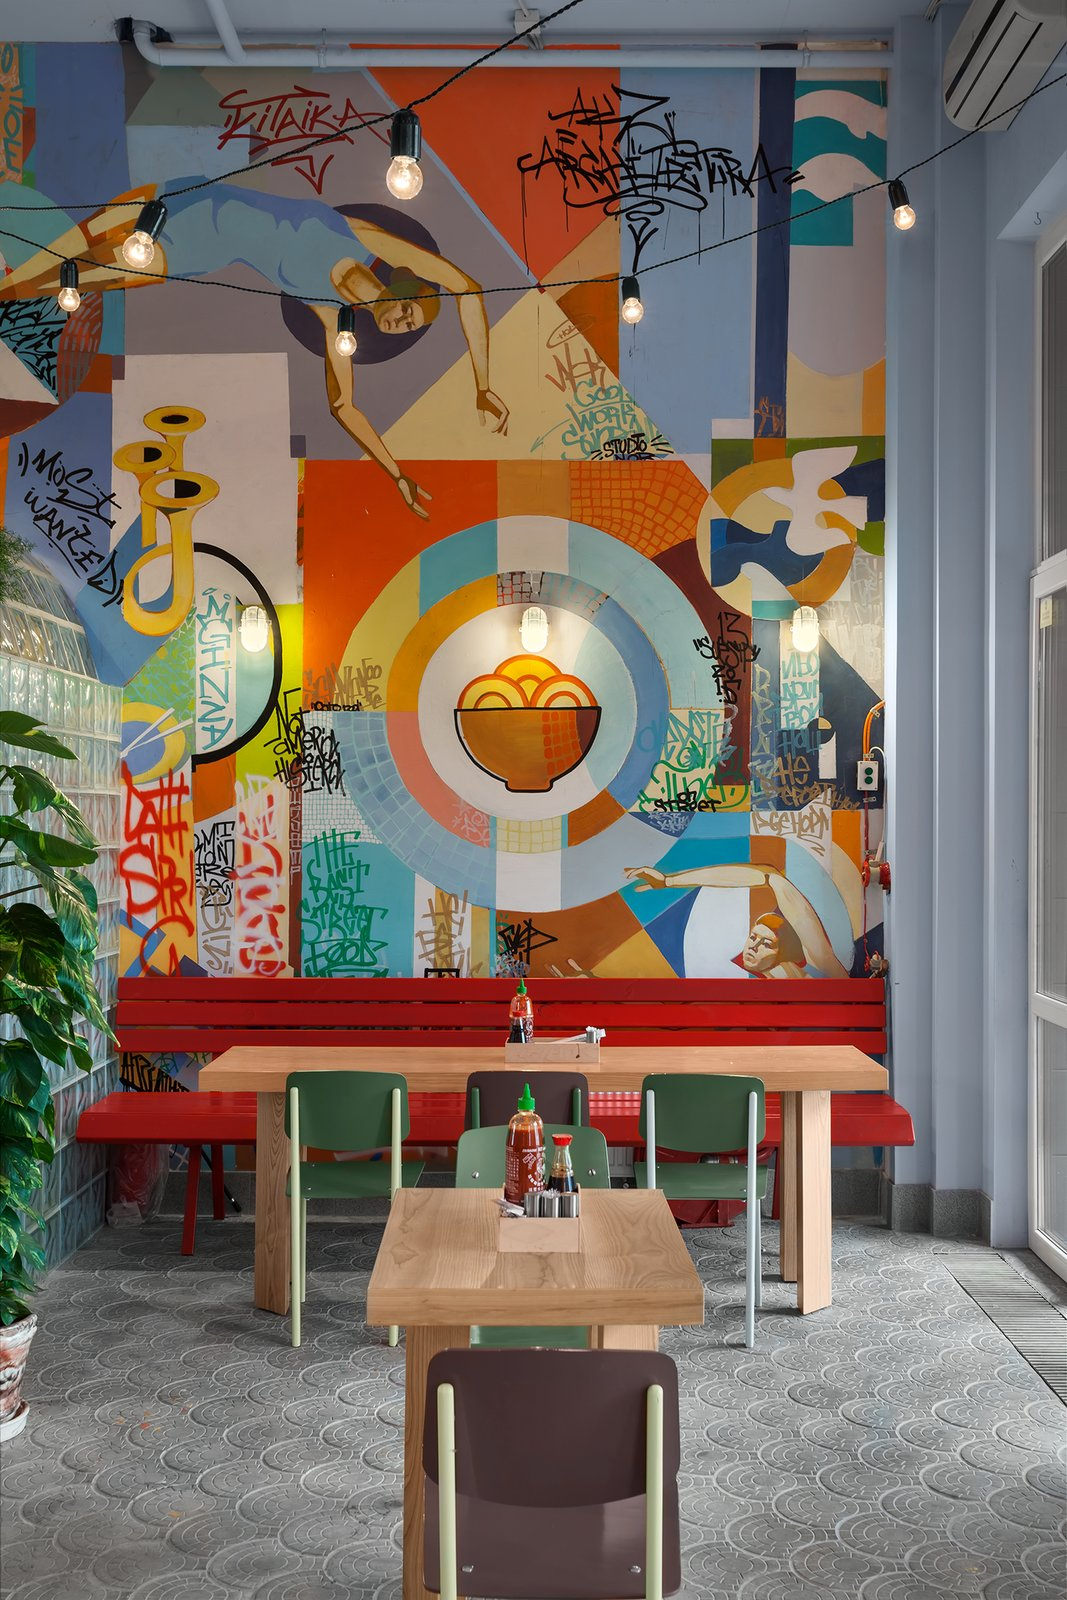 A vibrant and eclectic 65-seater diner in Kiev, Ukraine that serves Asian street food, Kitaika designed by AKZ Architectura was inspired by street culture in Asia and Ukraine. Combining carnival-like elements, bold colors, garlands of exposed light bulbs, and eye-catching graffiti, this little diner is a surreal and delightful take on Asian dining.  Photo 4 of 12 in 5 Interesting and Surprising Asian Eateries Around the World